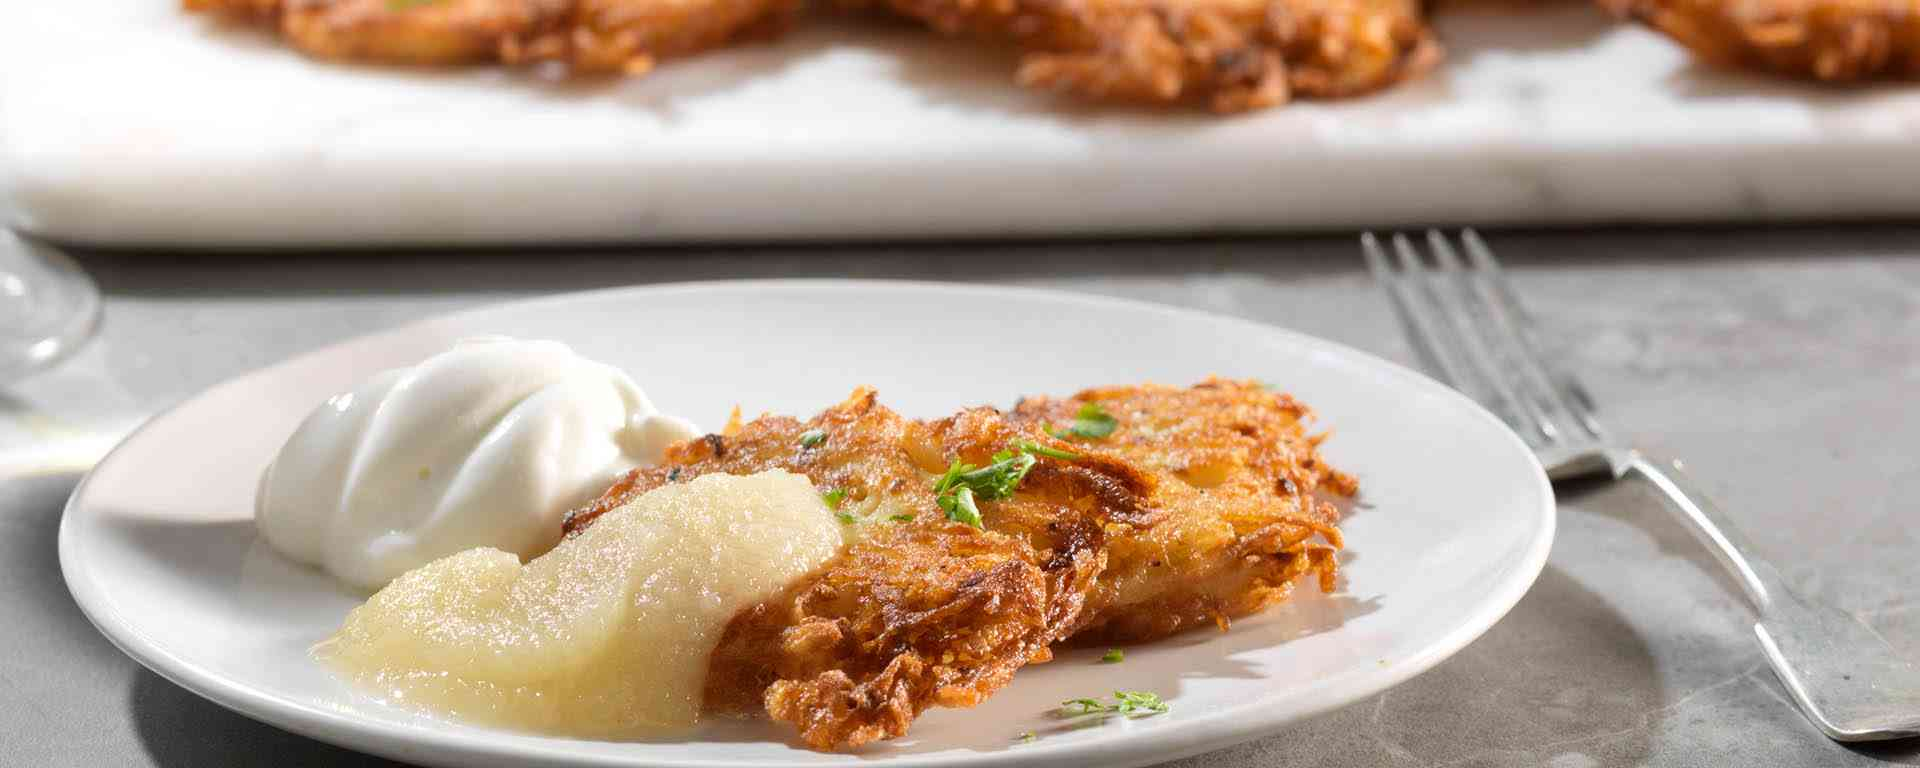 Photo for - Cheddar Latkes with Apple Sauce